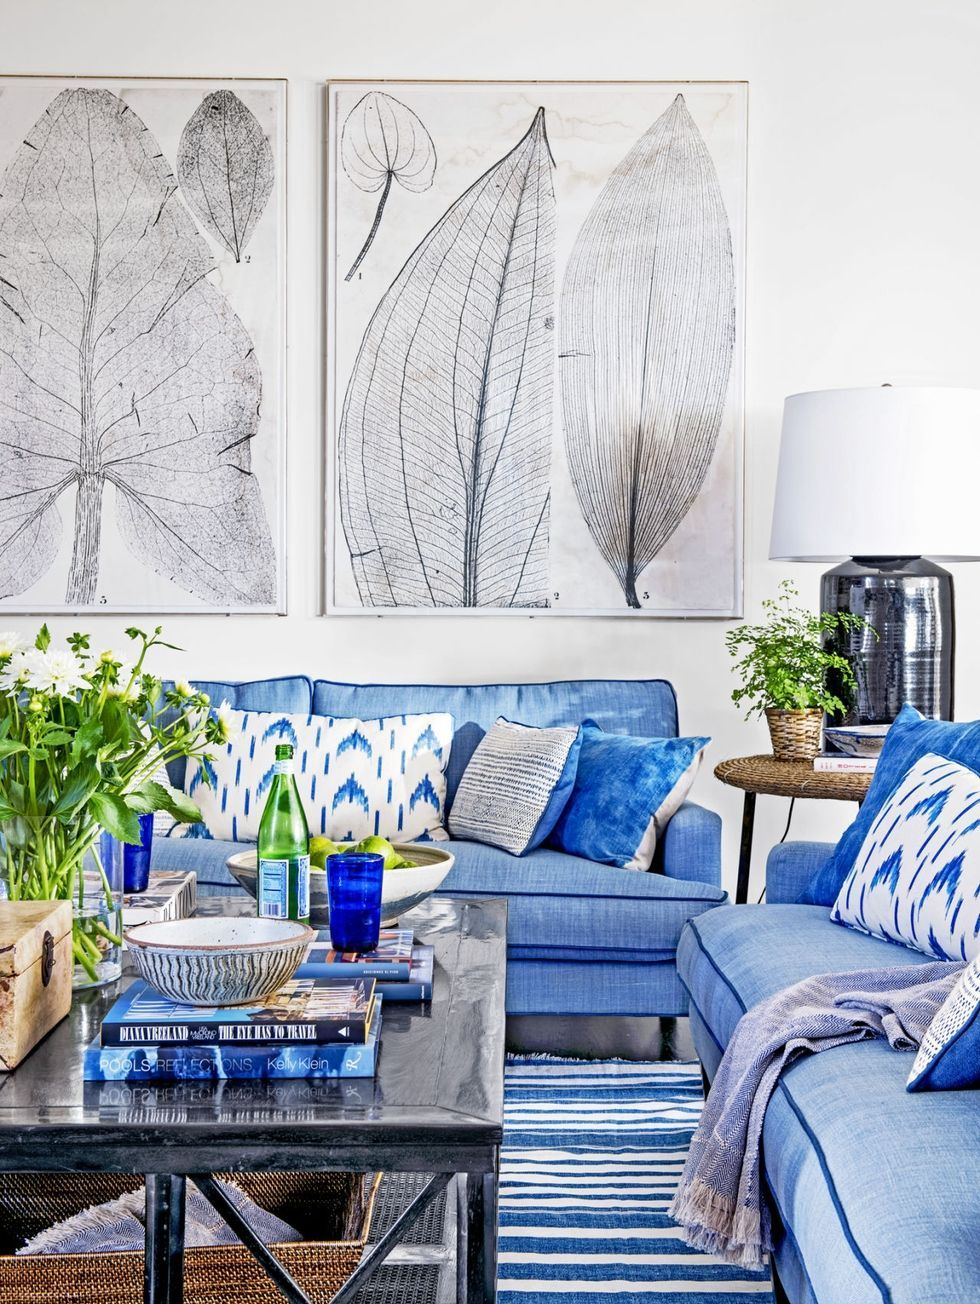 House 15 Rules for Decorating With Blue